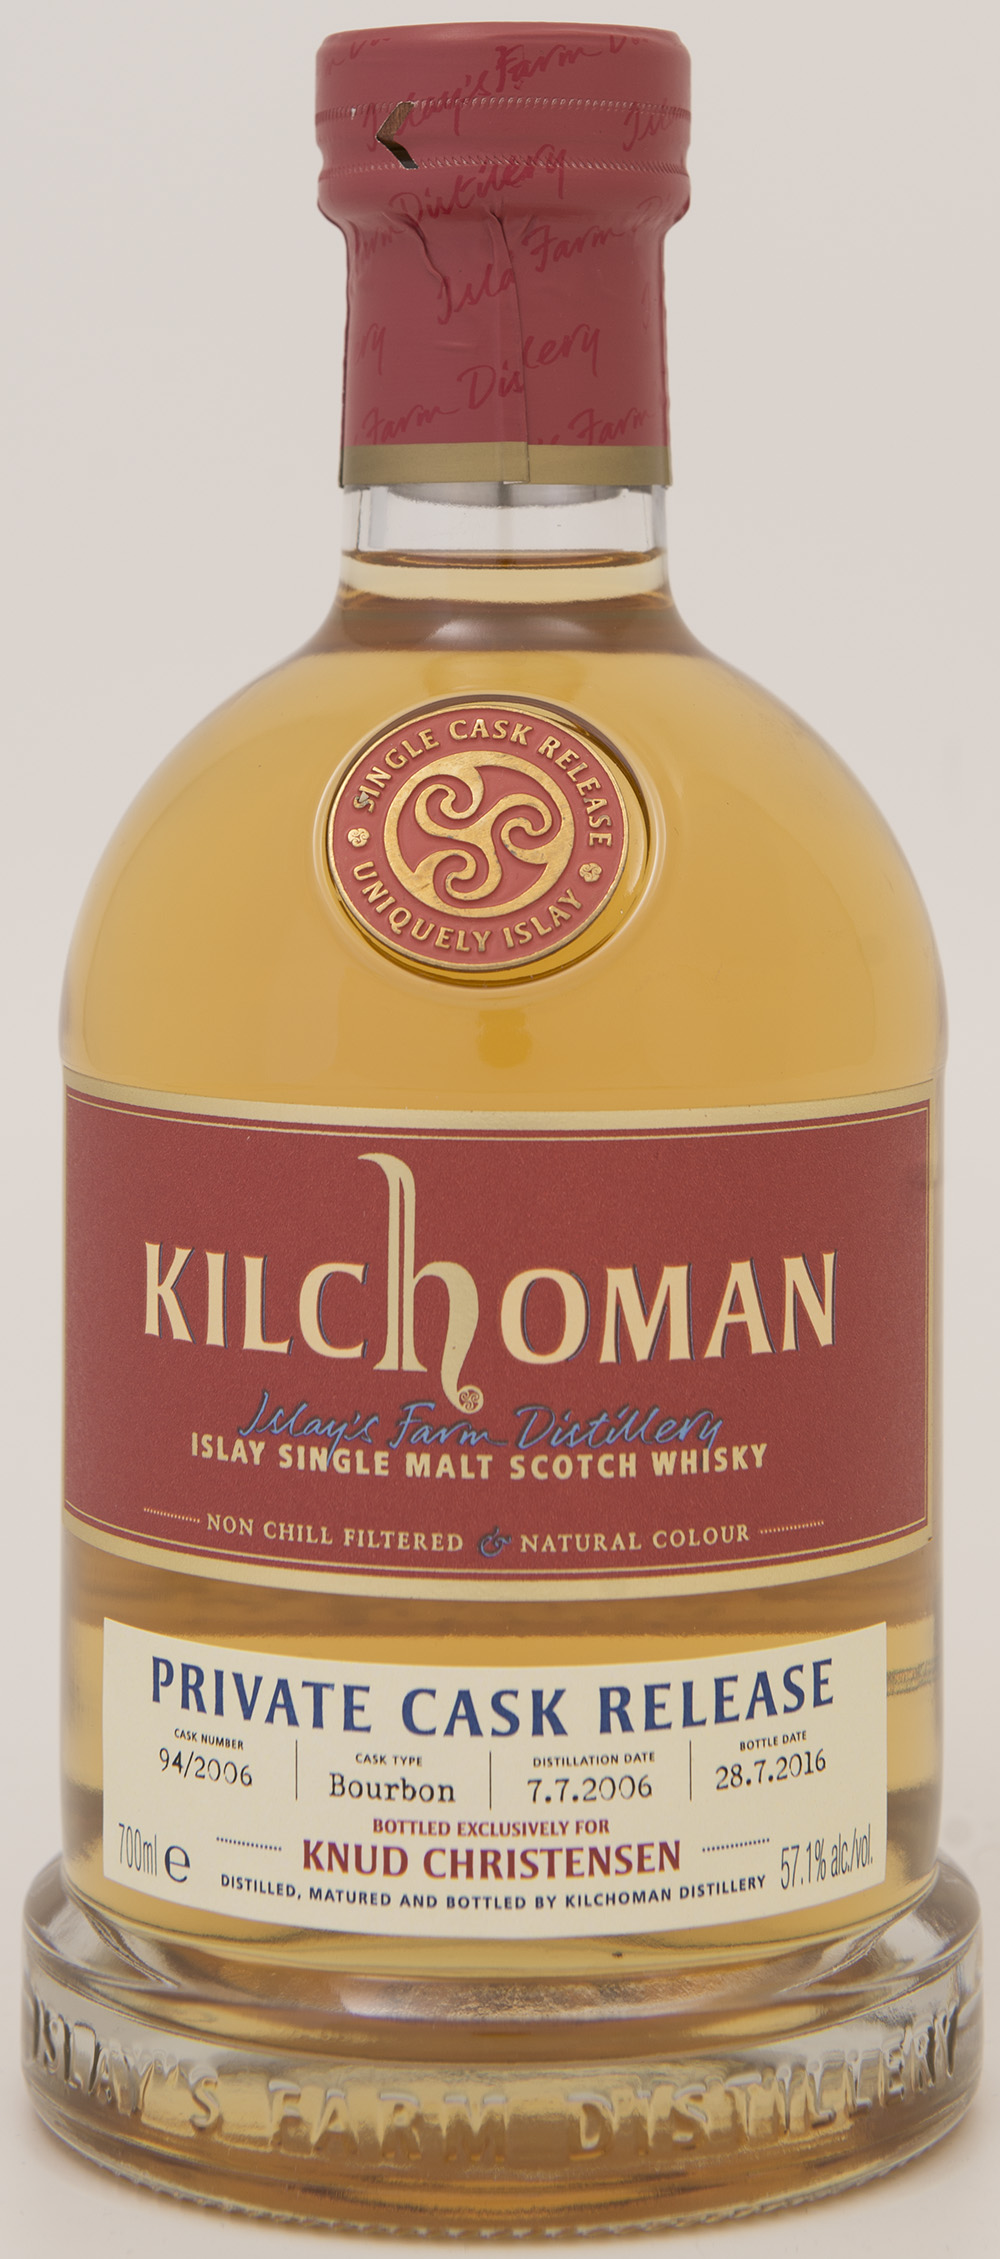 Billede: DSC_1419 - Kilchoman Private Cask Release 94 2006 - bottle front.jpg